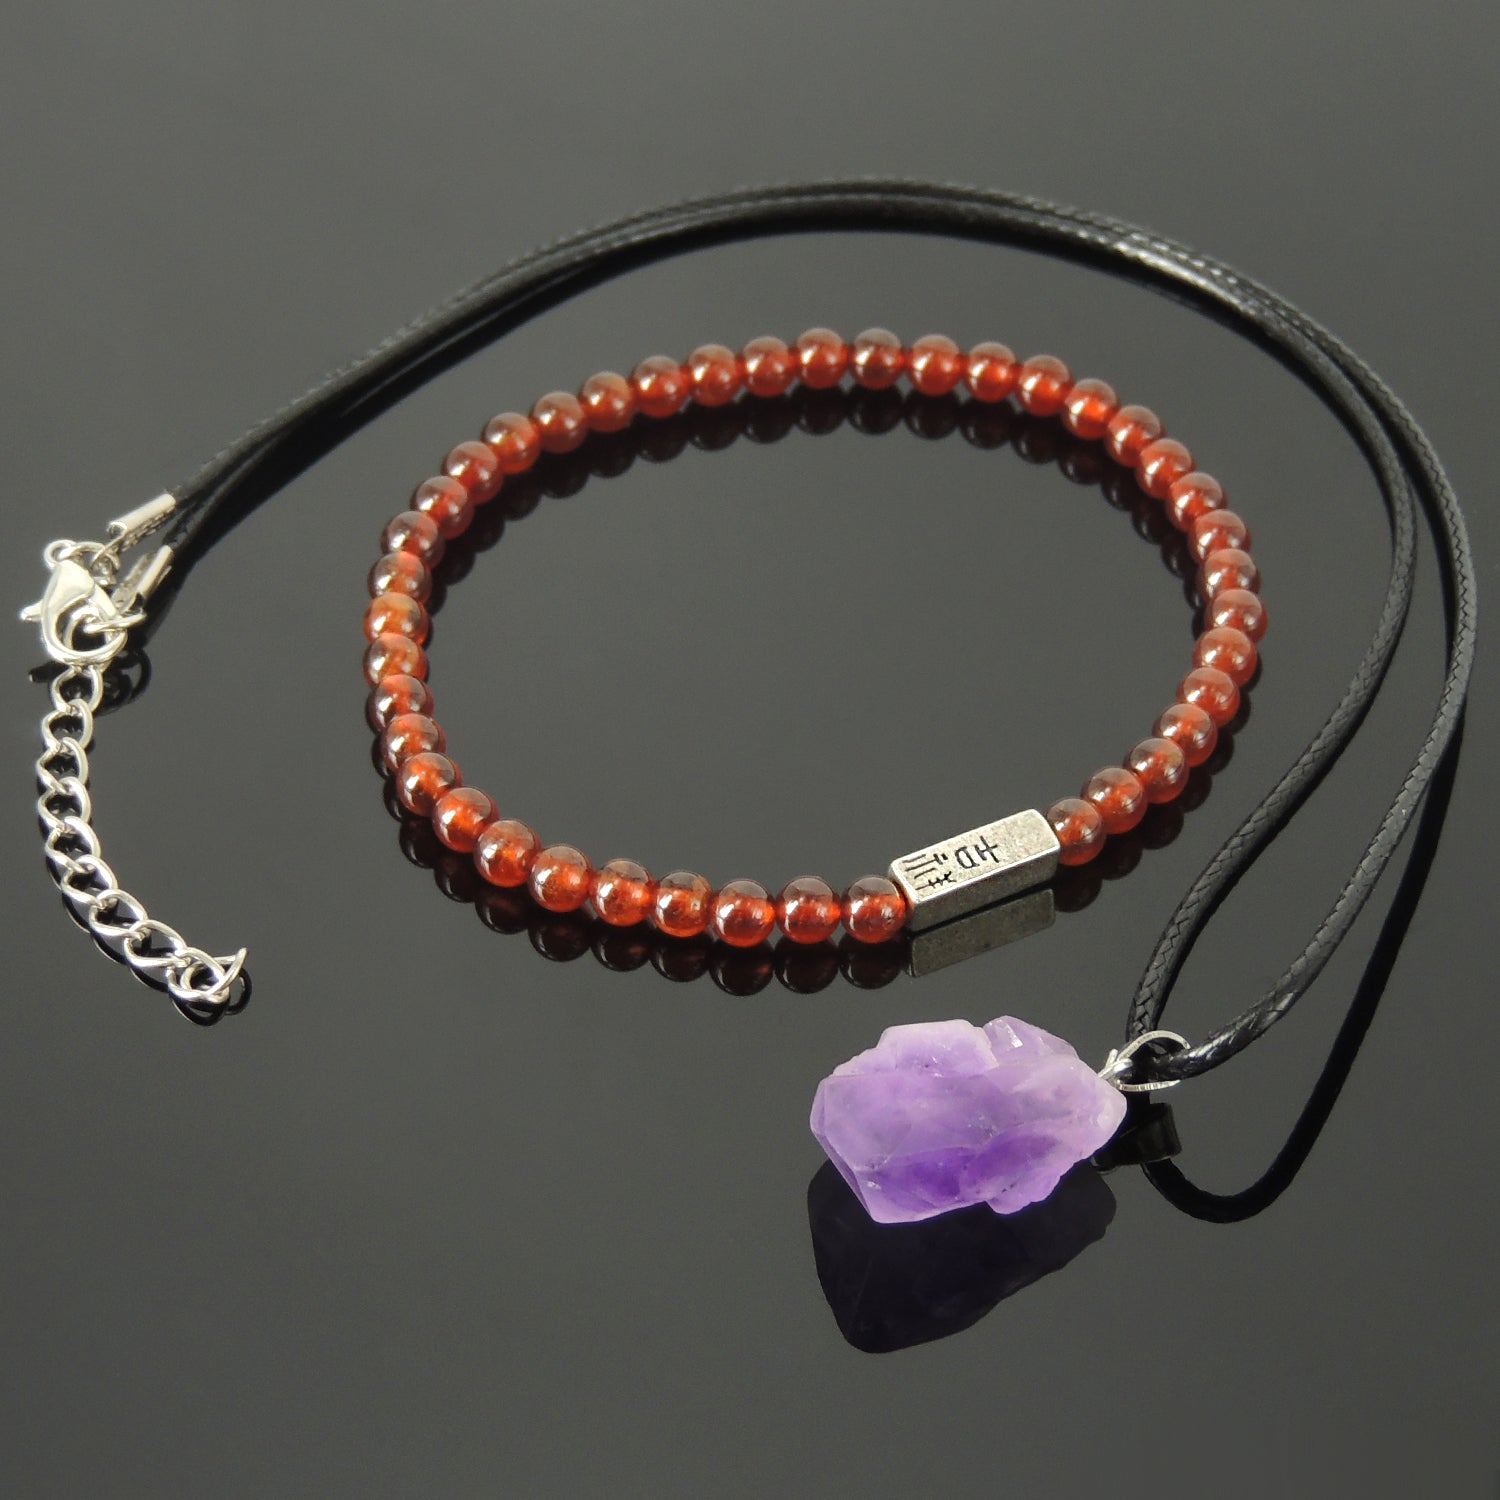 Handmade Wellness Gift Set | Genuine Orange Spessartine Garnet Bracelet | Raw Amethyst Crystal Pendant Necklace | Powerful Healing Gemstones | Chakra Stones for Expanding Intuition and Accelerating Manifestation